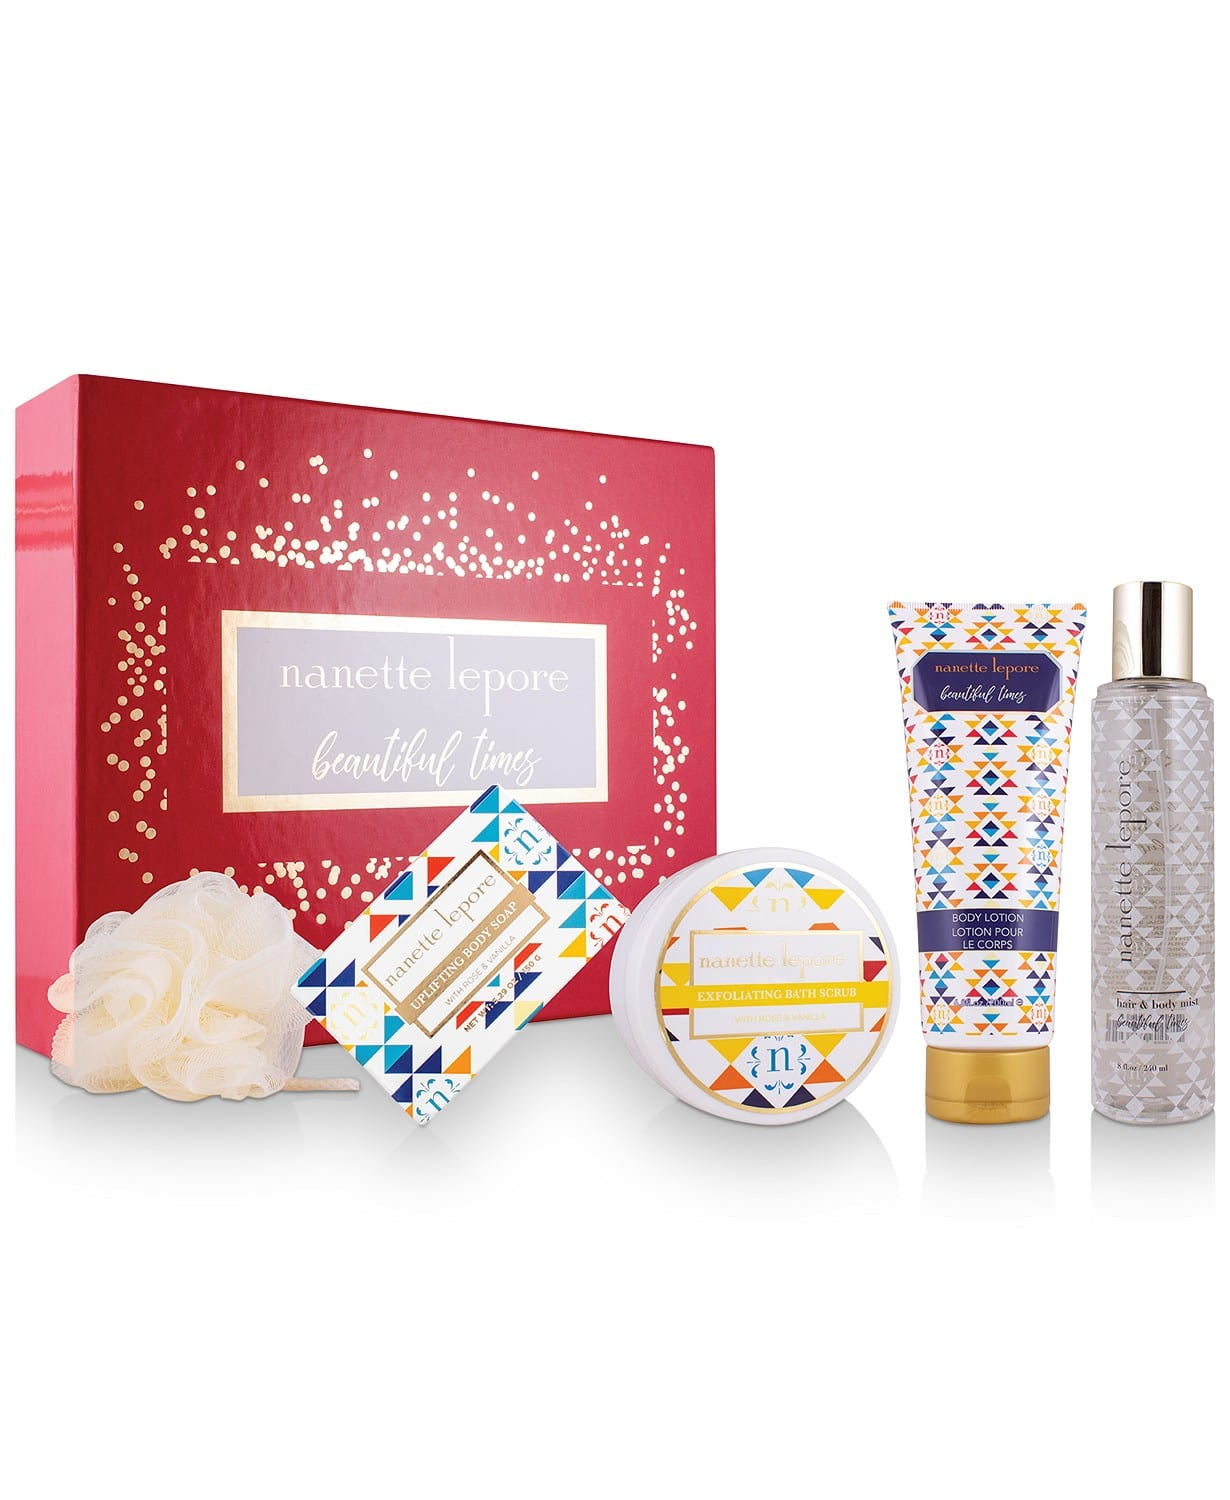 5-Pc Nanette Lepore Gift Set $20, 5-Pc Clinique Full-Size Lip Set $18.75 & More + Free S/H on $25+